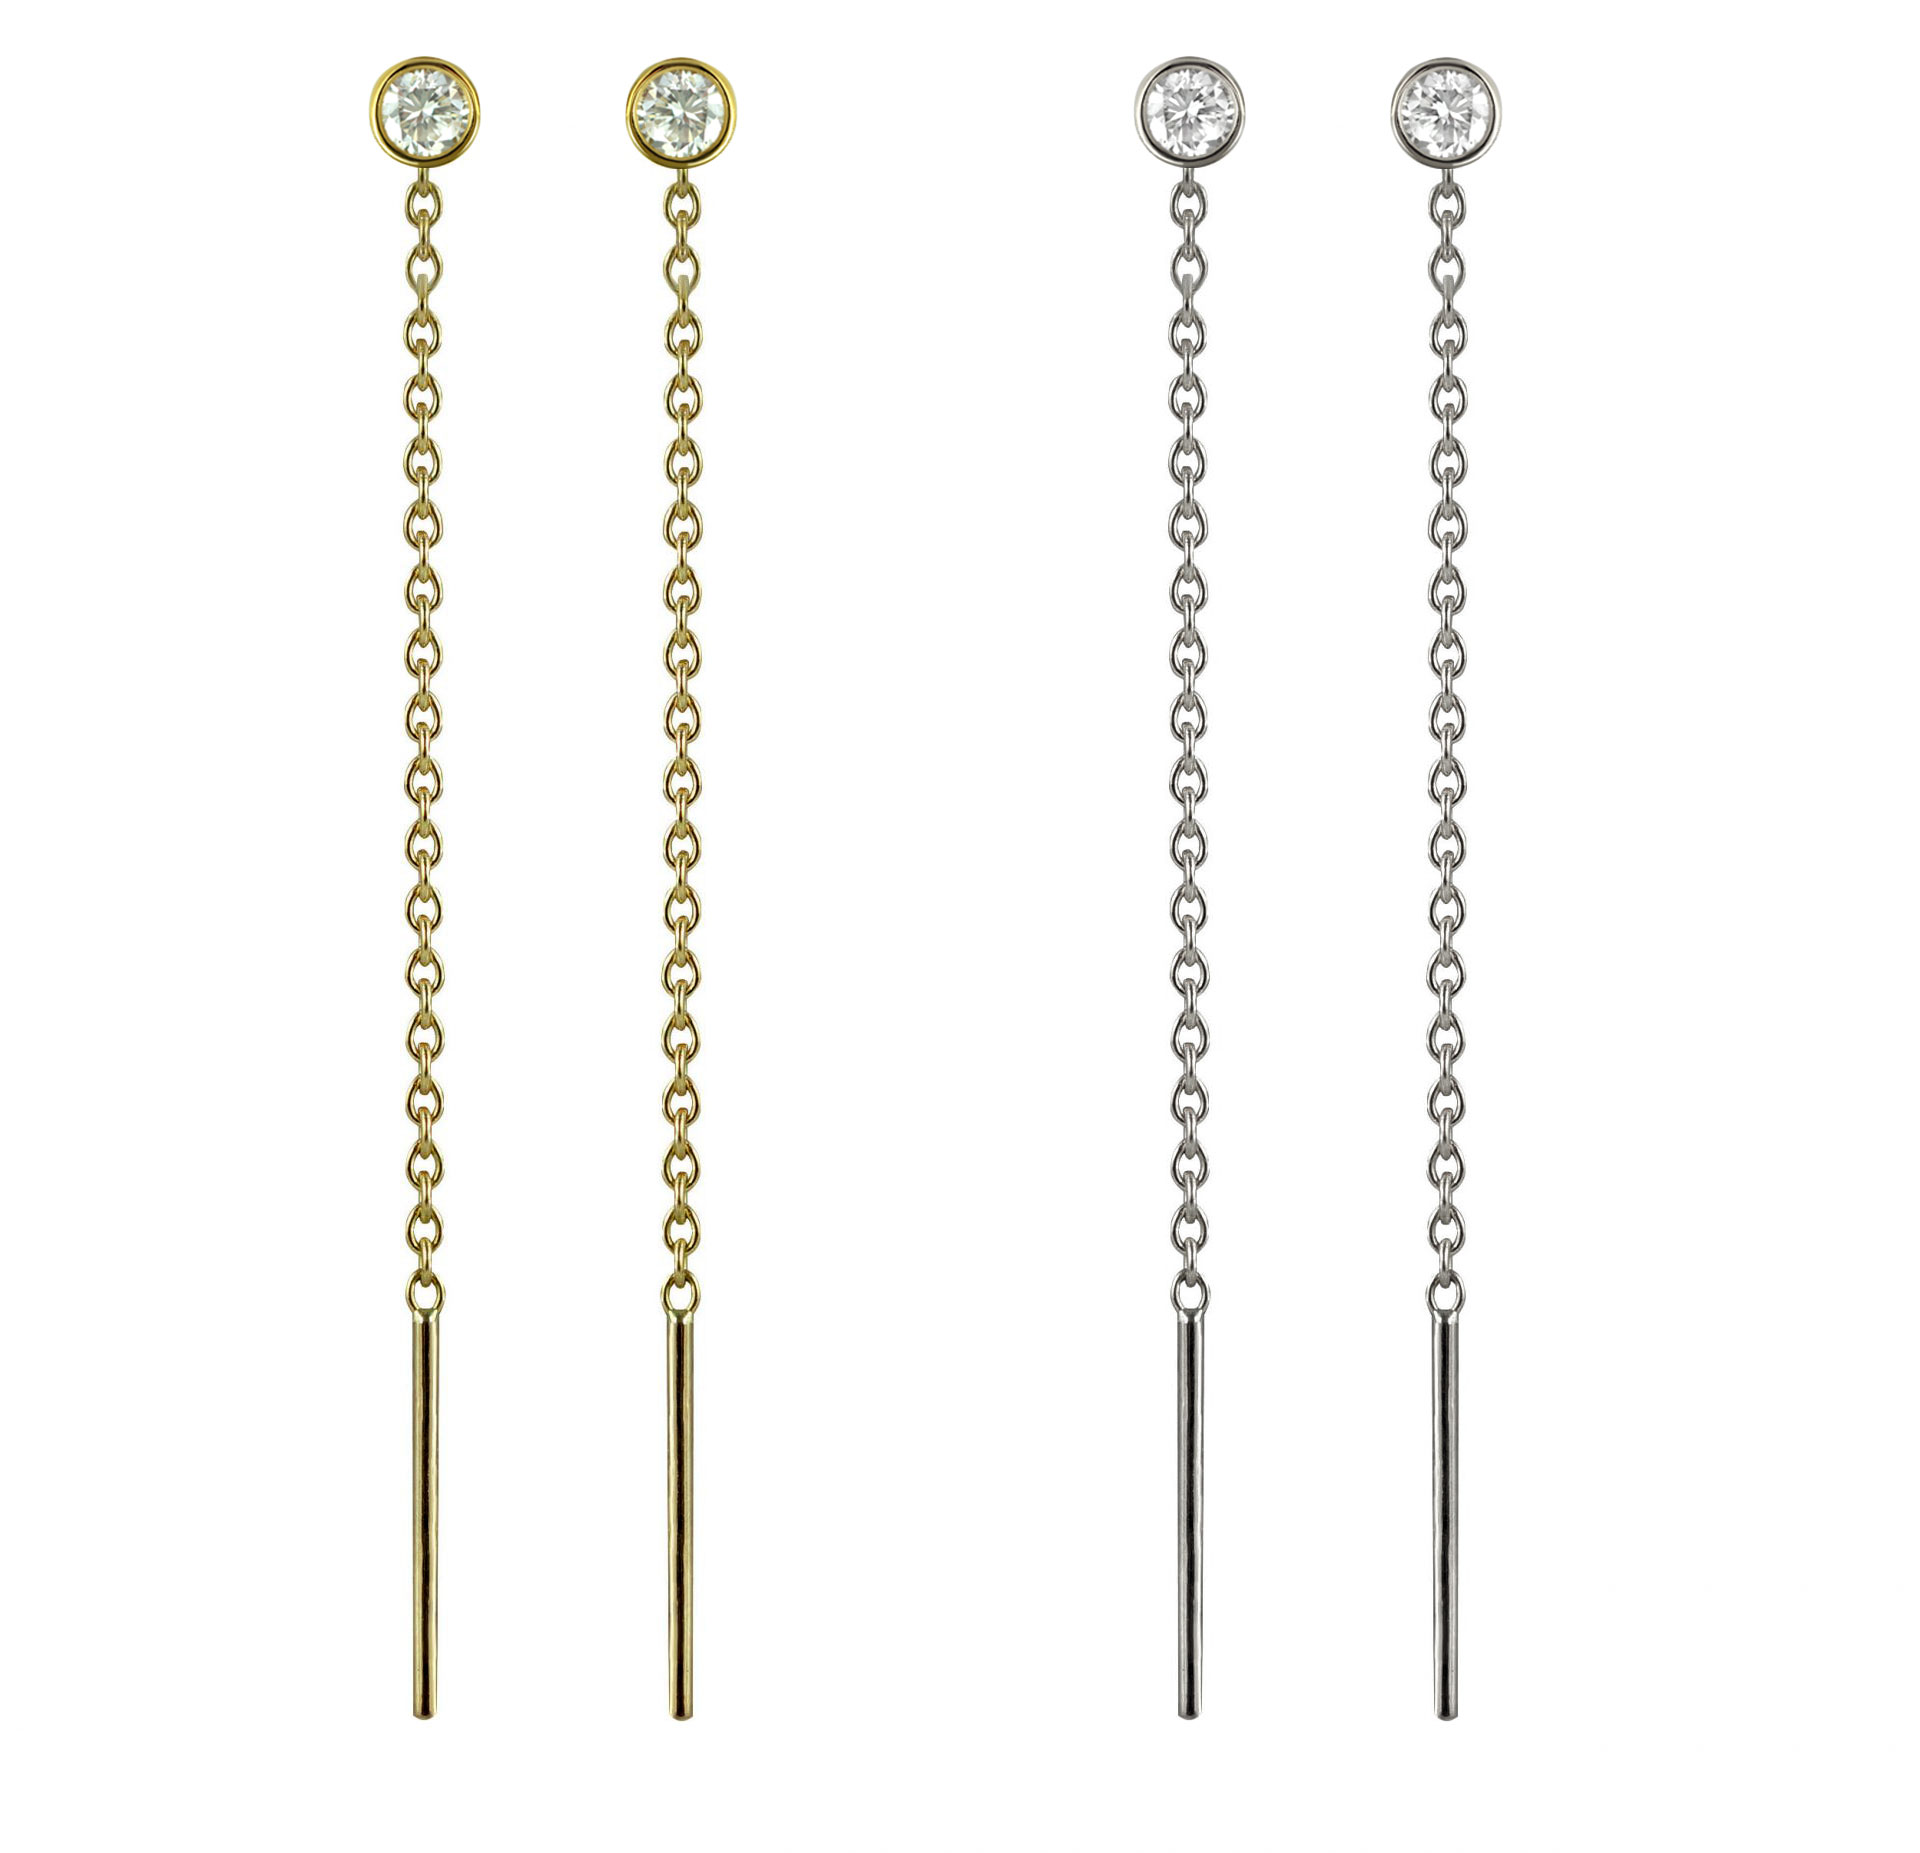 lena-cohen-handcrafted-in-london-hatton-garden-solid-18k-white-yellow–gold-threader-earrings